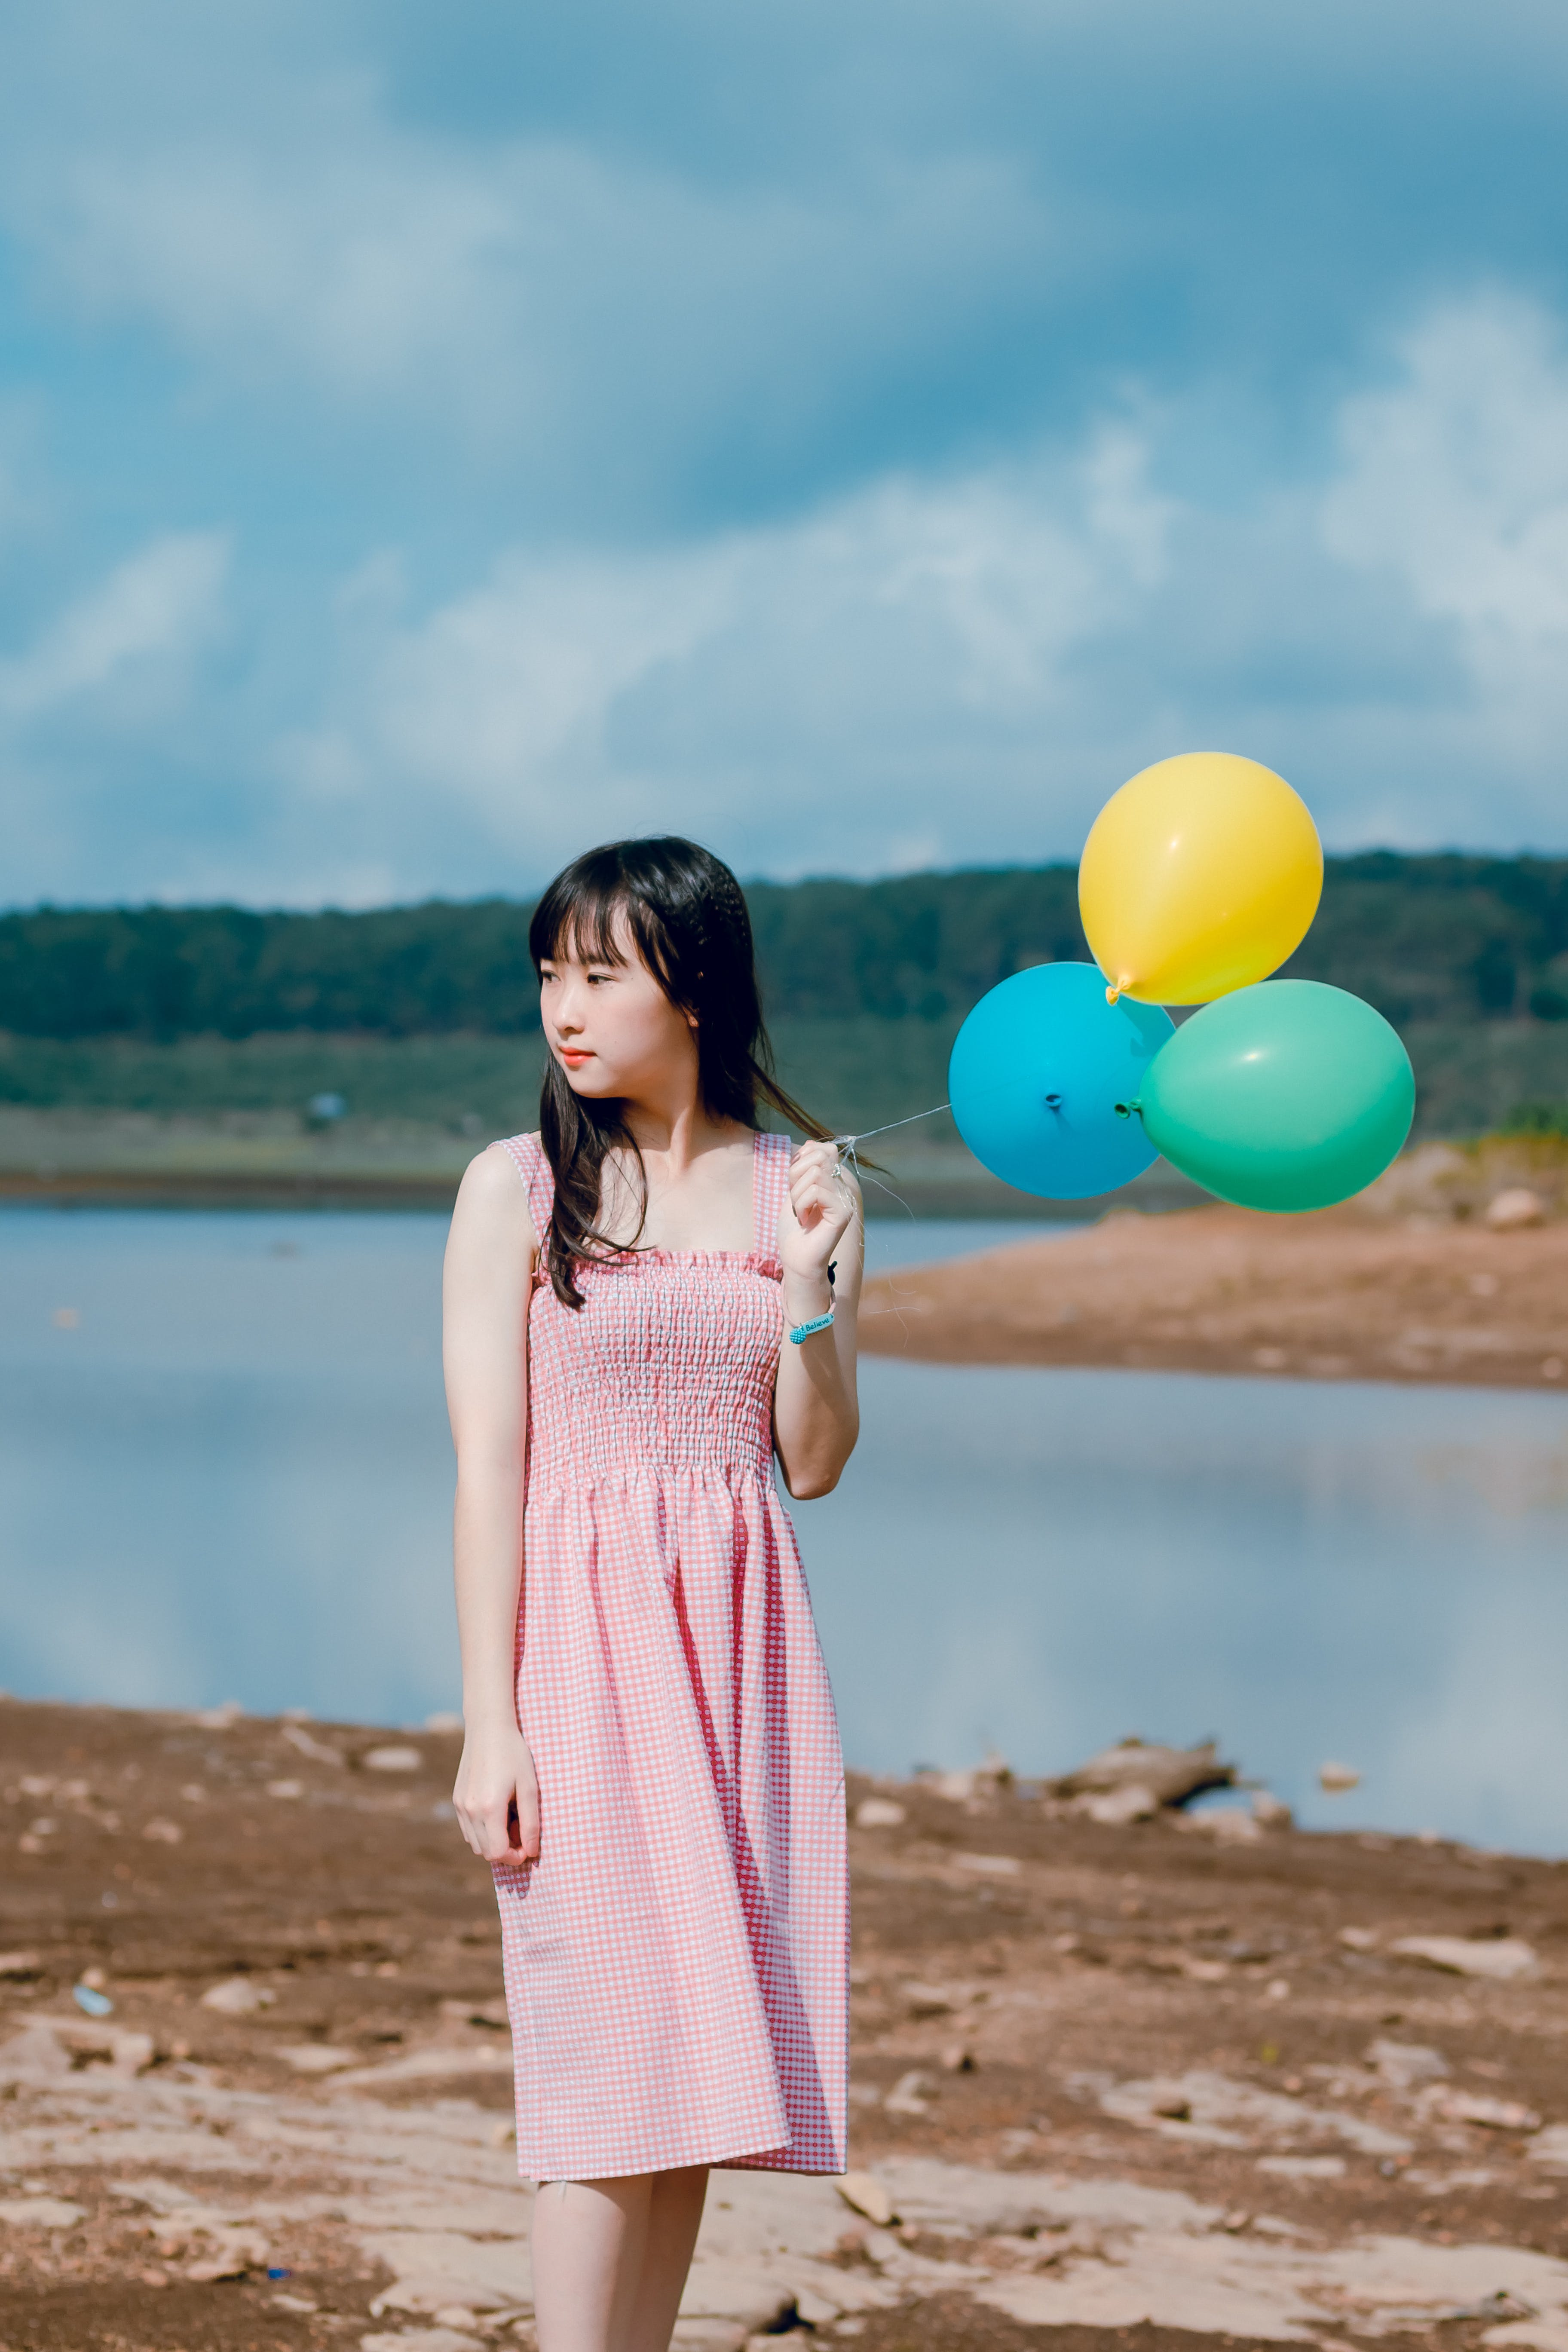 Woman Wearing Pink Dress Holding Three Balloons Near Body of Water